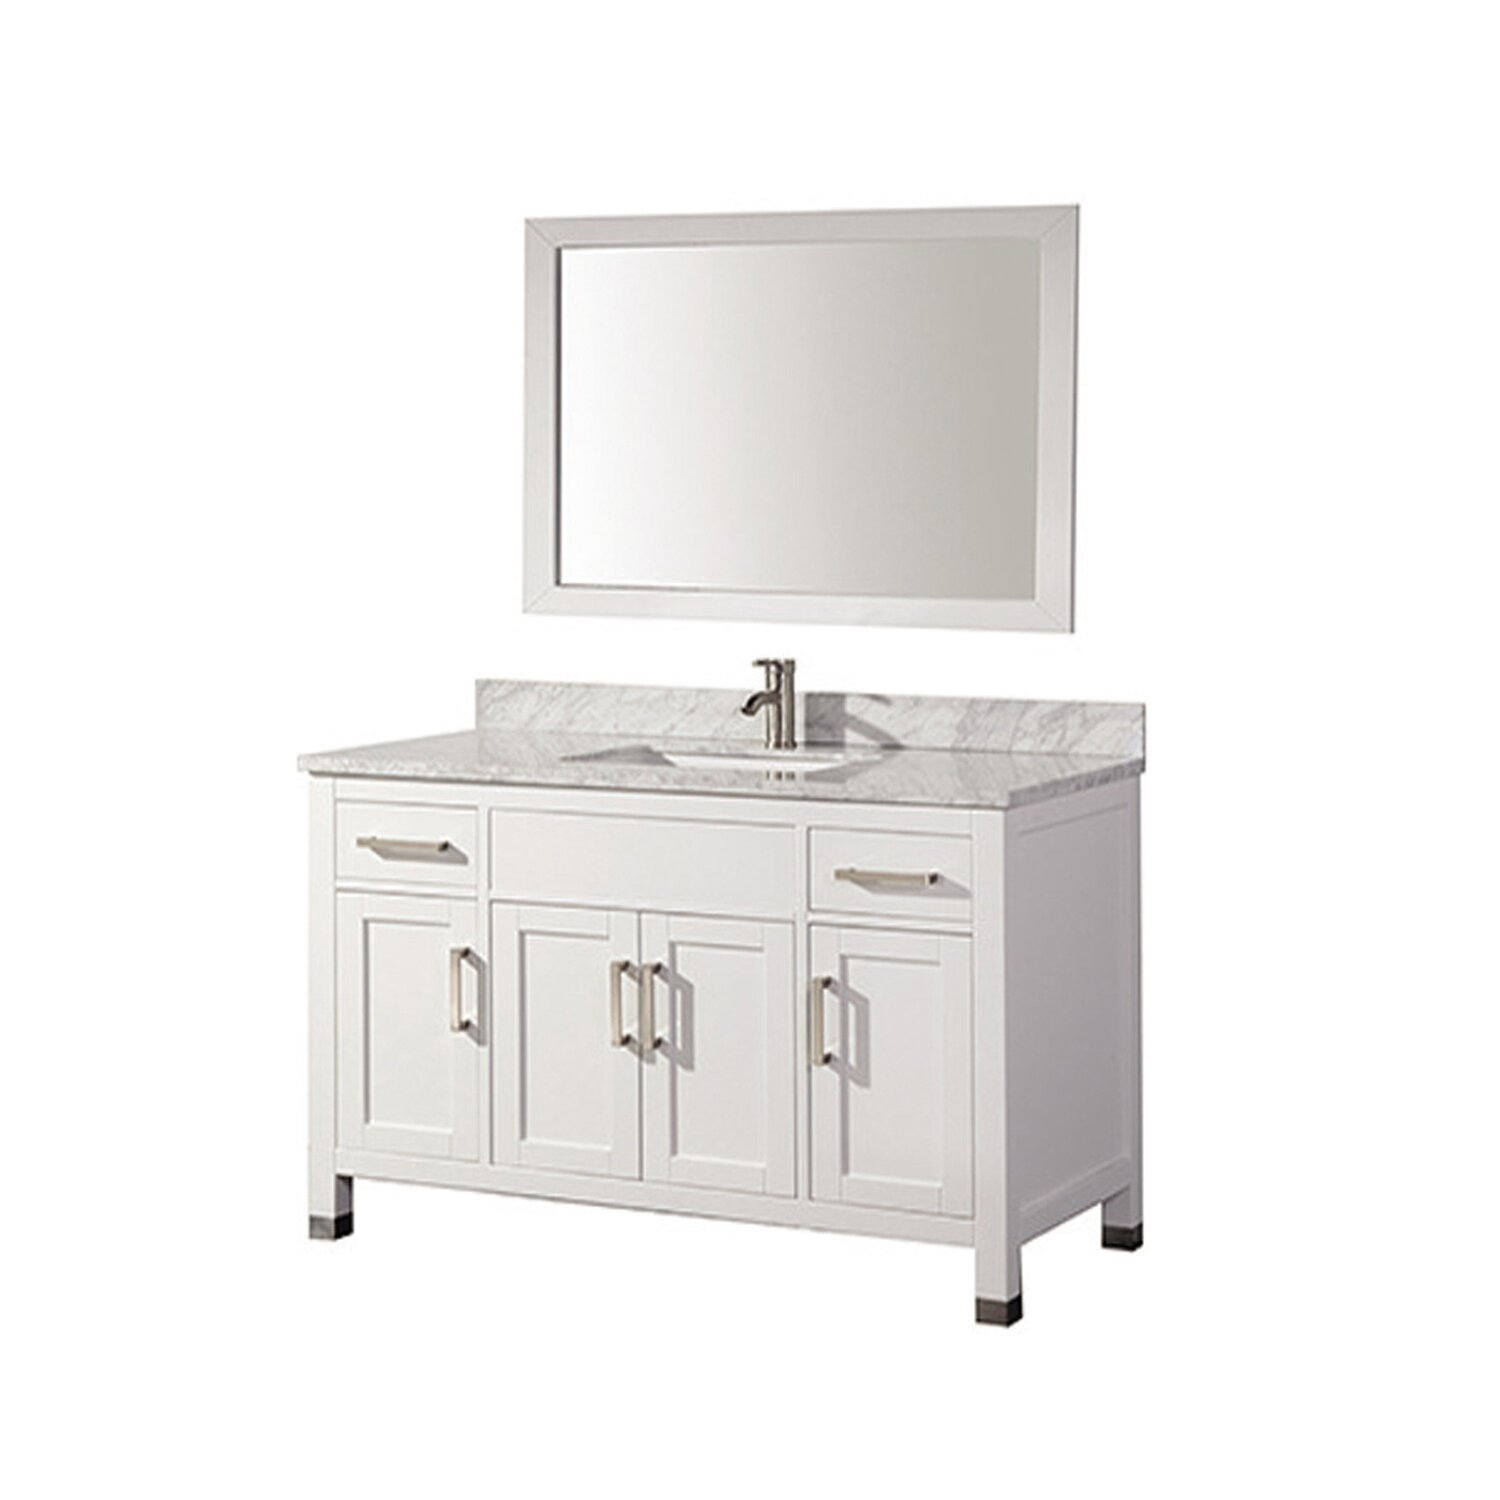 Mtdvanities ricca 60 single sink bathroom vanity set with mirror reviews wayfair Bathroom sink and vanity sets